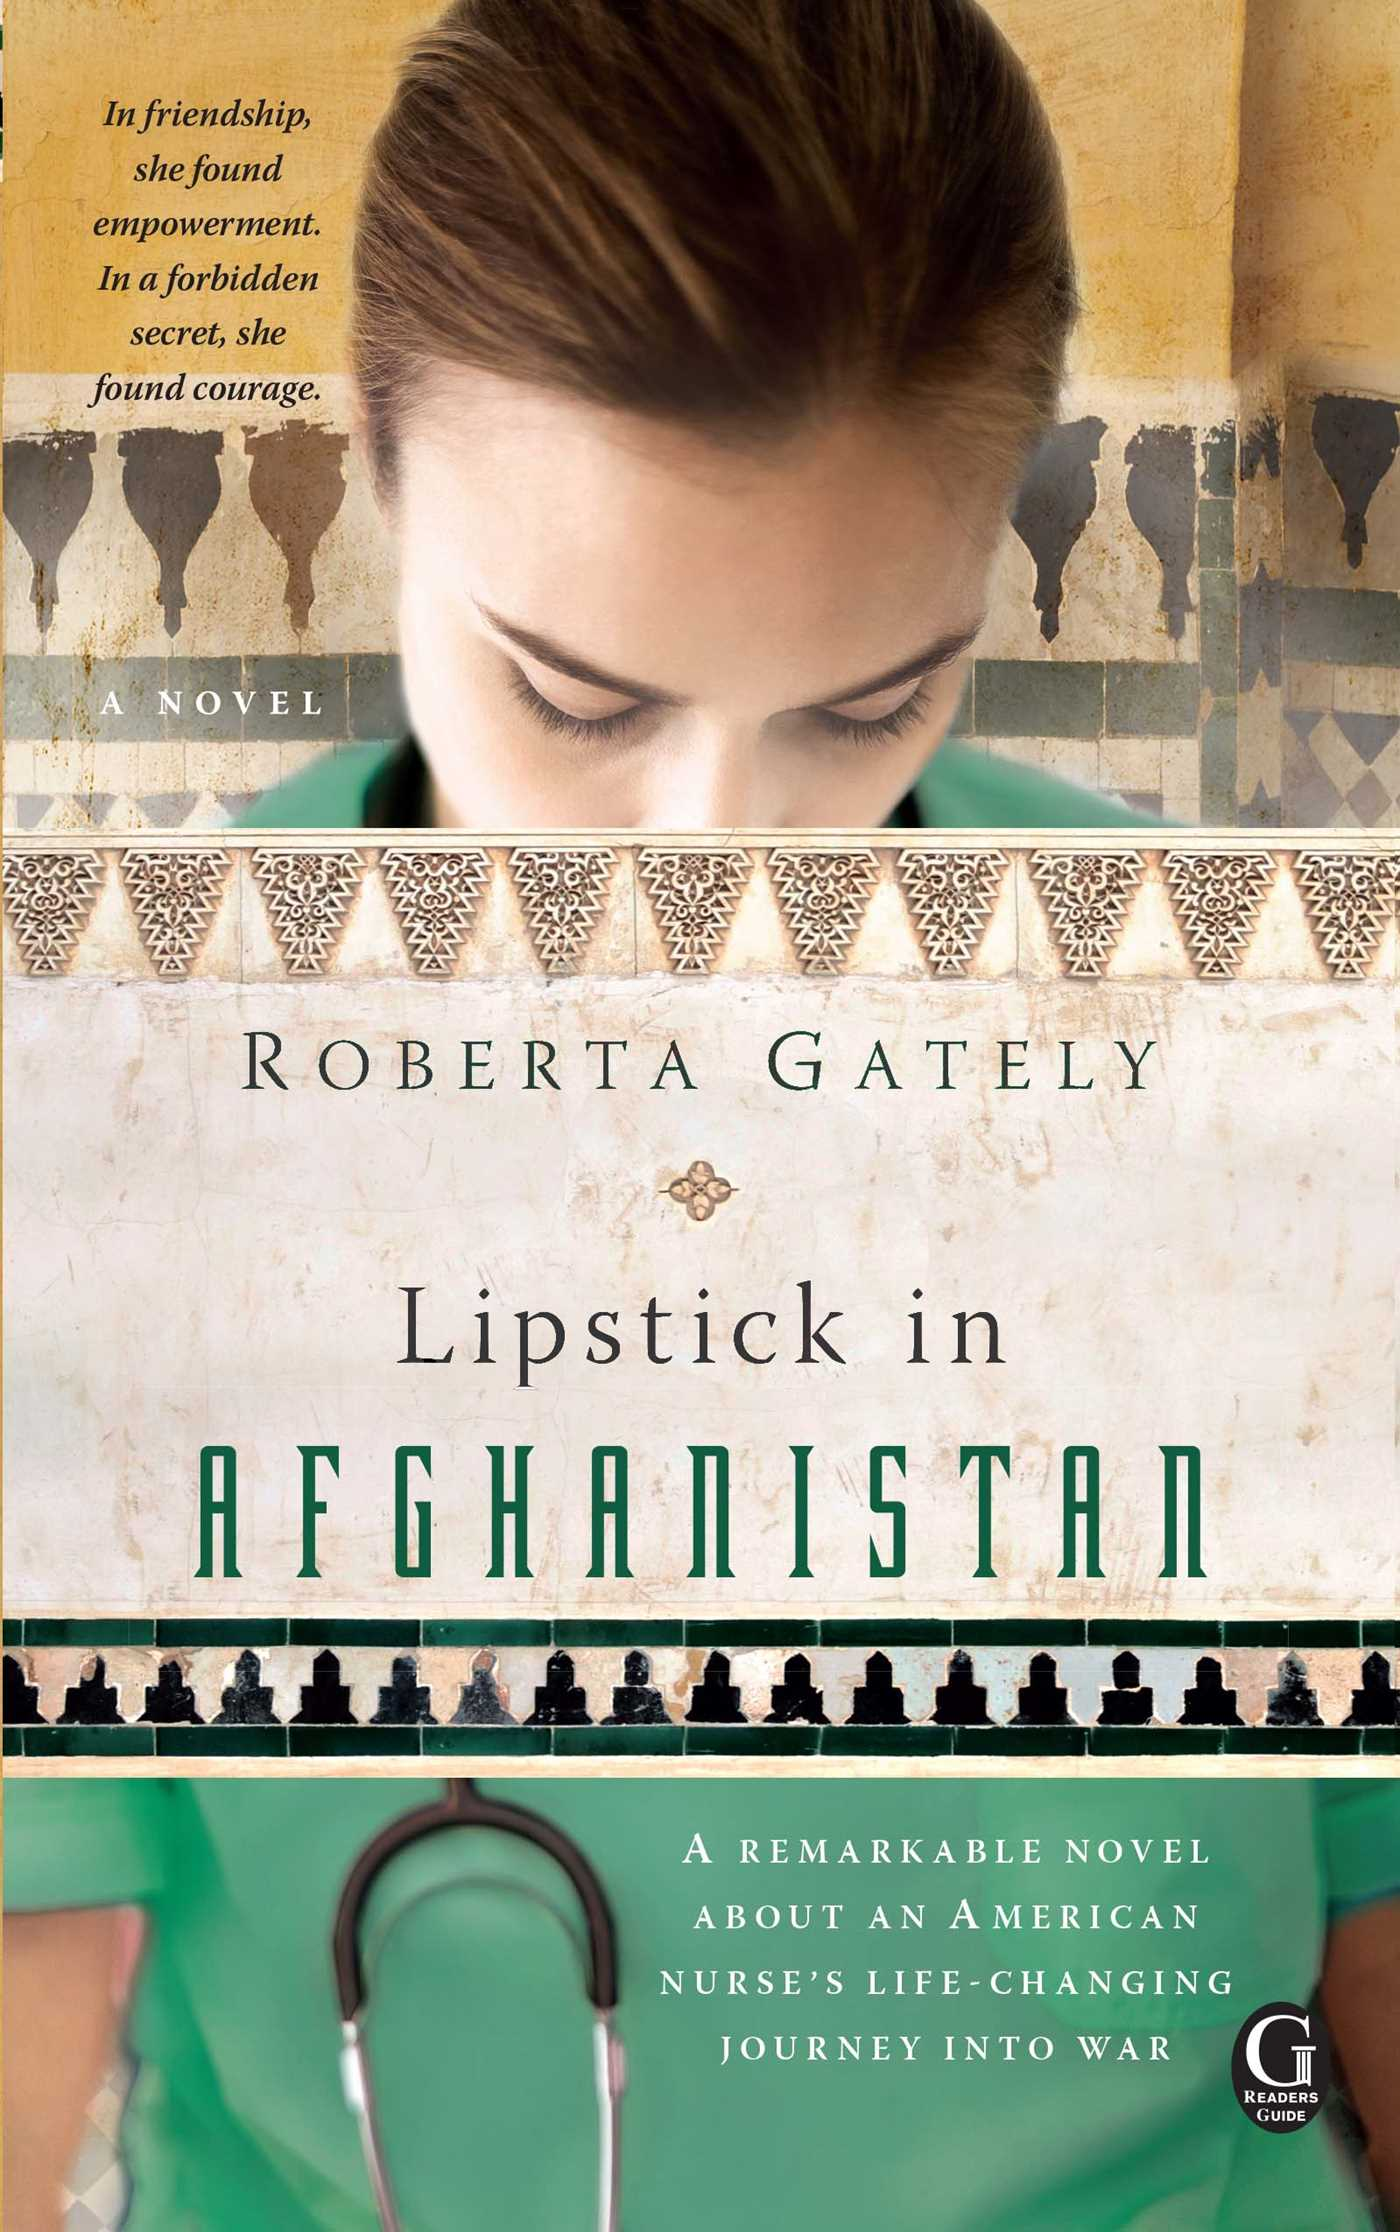 Lipstick-in-afghanistan-9781439191385_hr